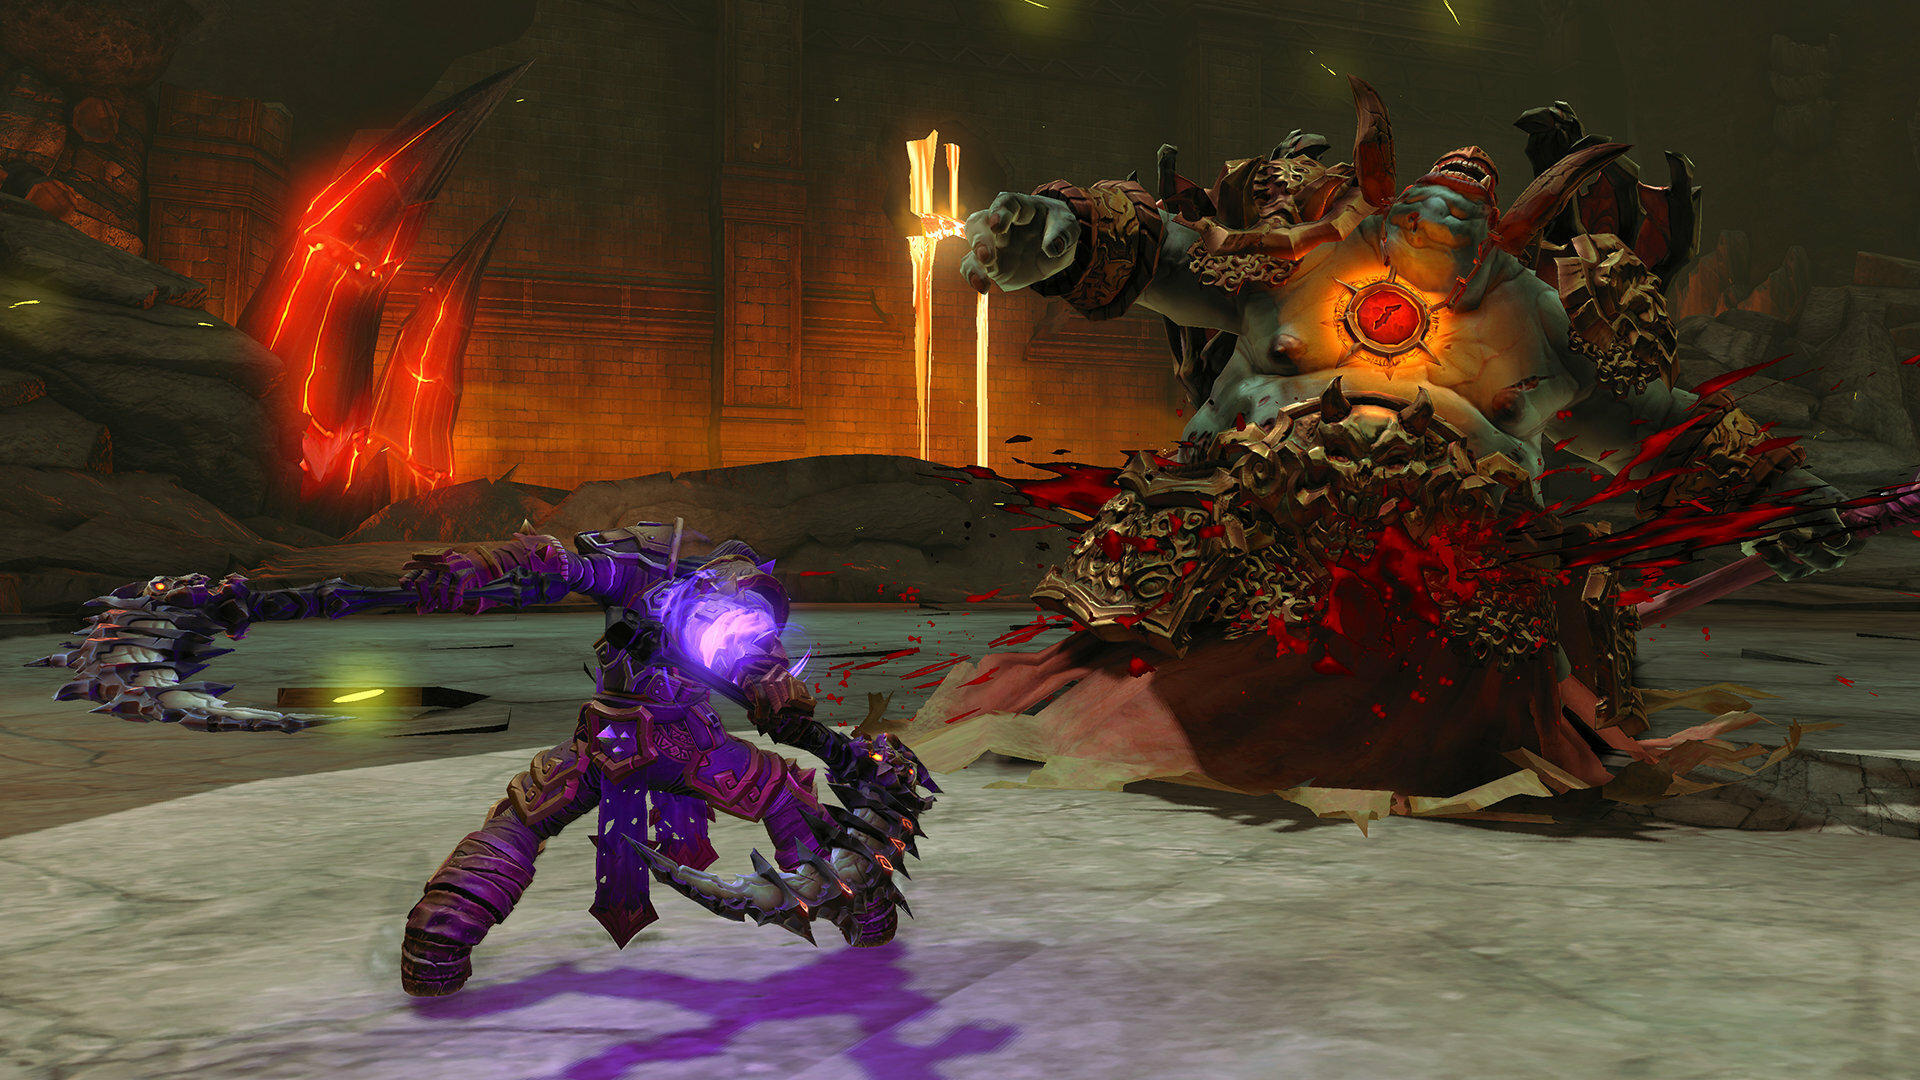 darksiders-2-deathinitive-edition-pc-screenshot-1